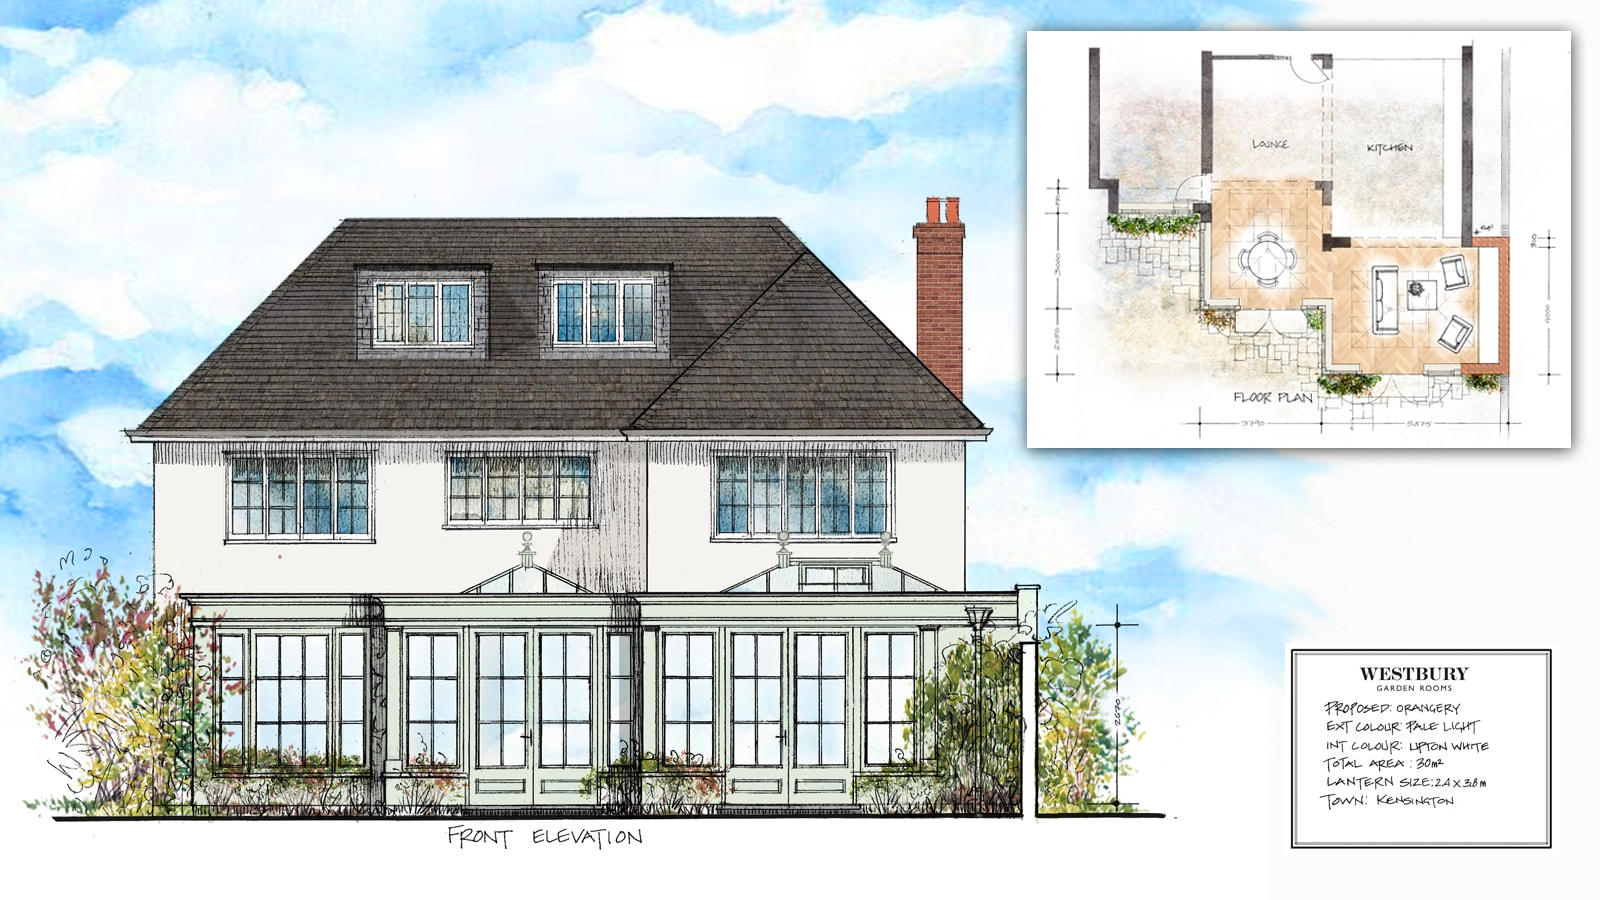 Design Drawing and Plan of Project